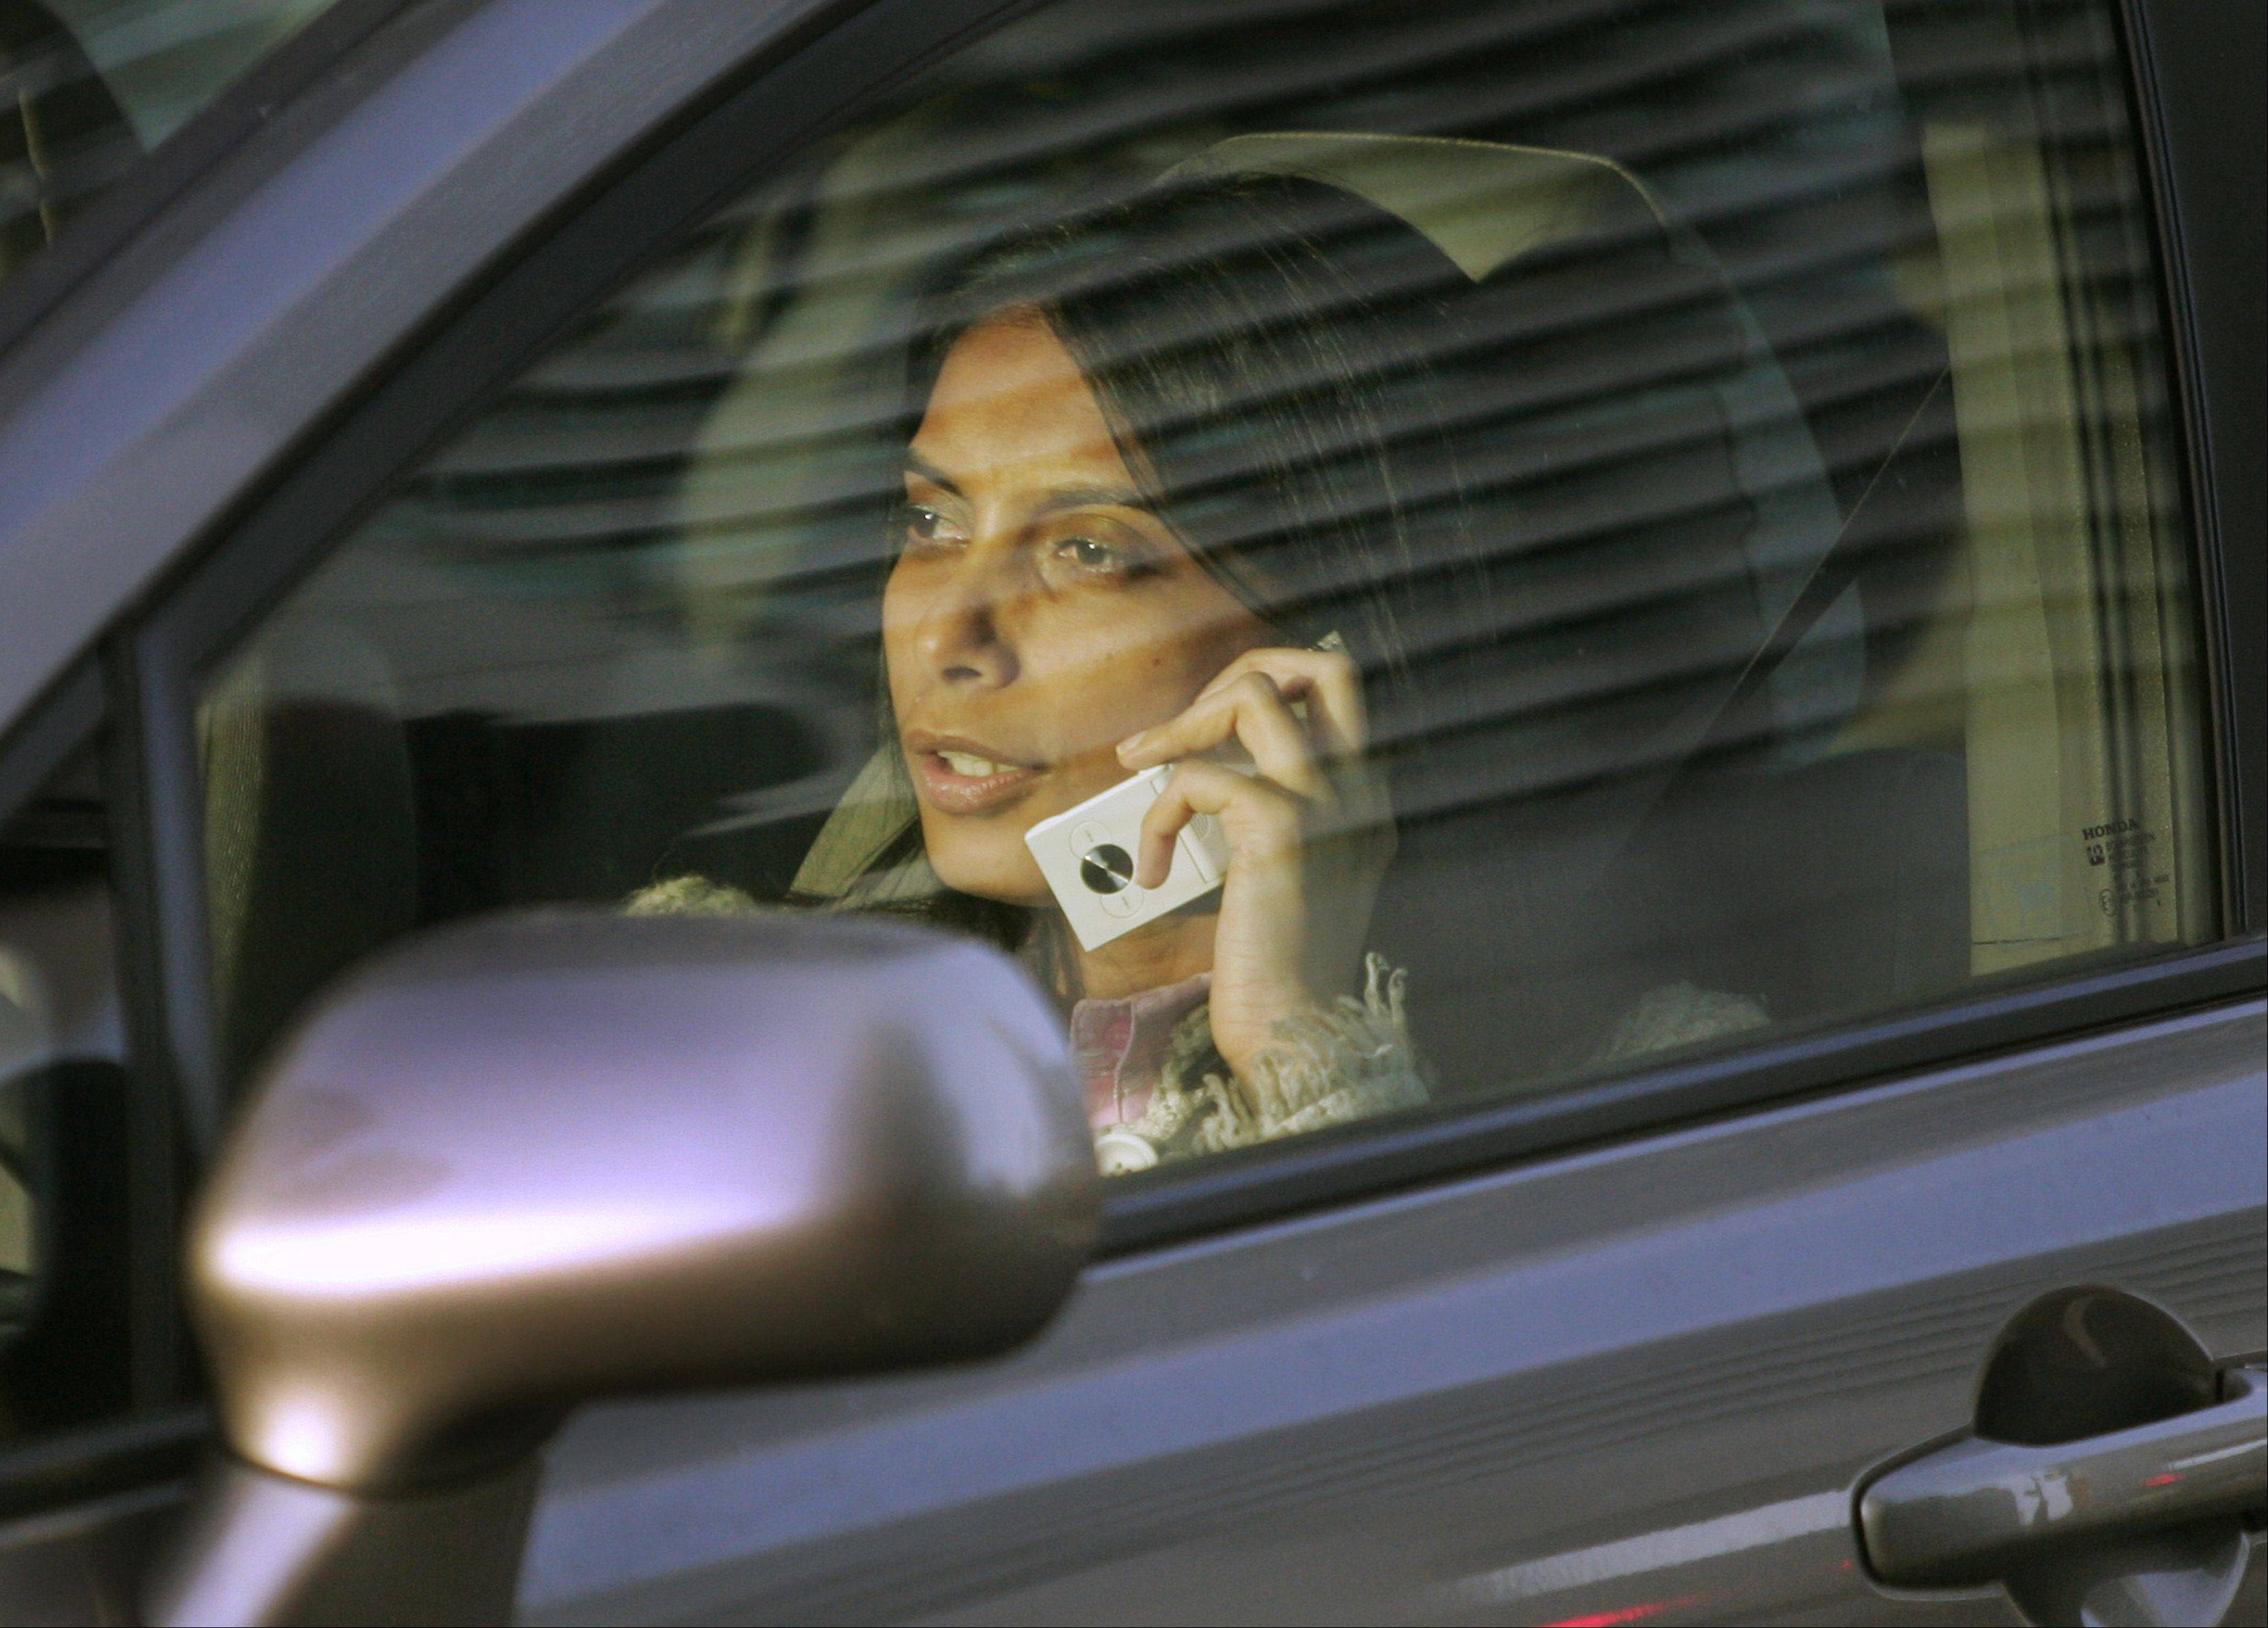 The Illinois Senate voted to ban cellphone use while driving.